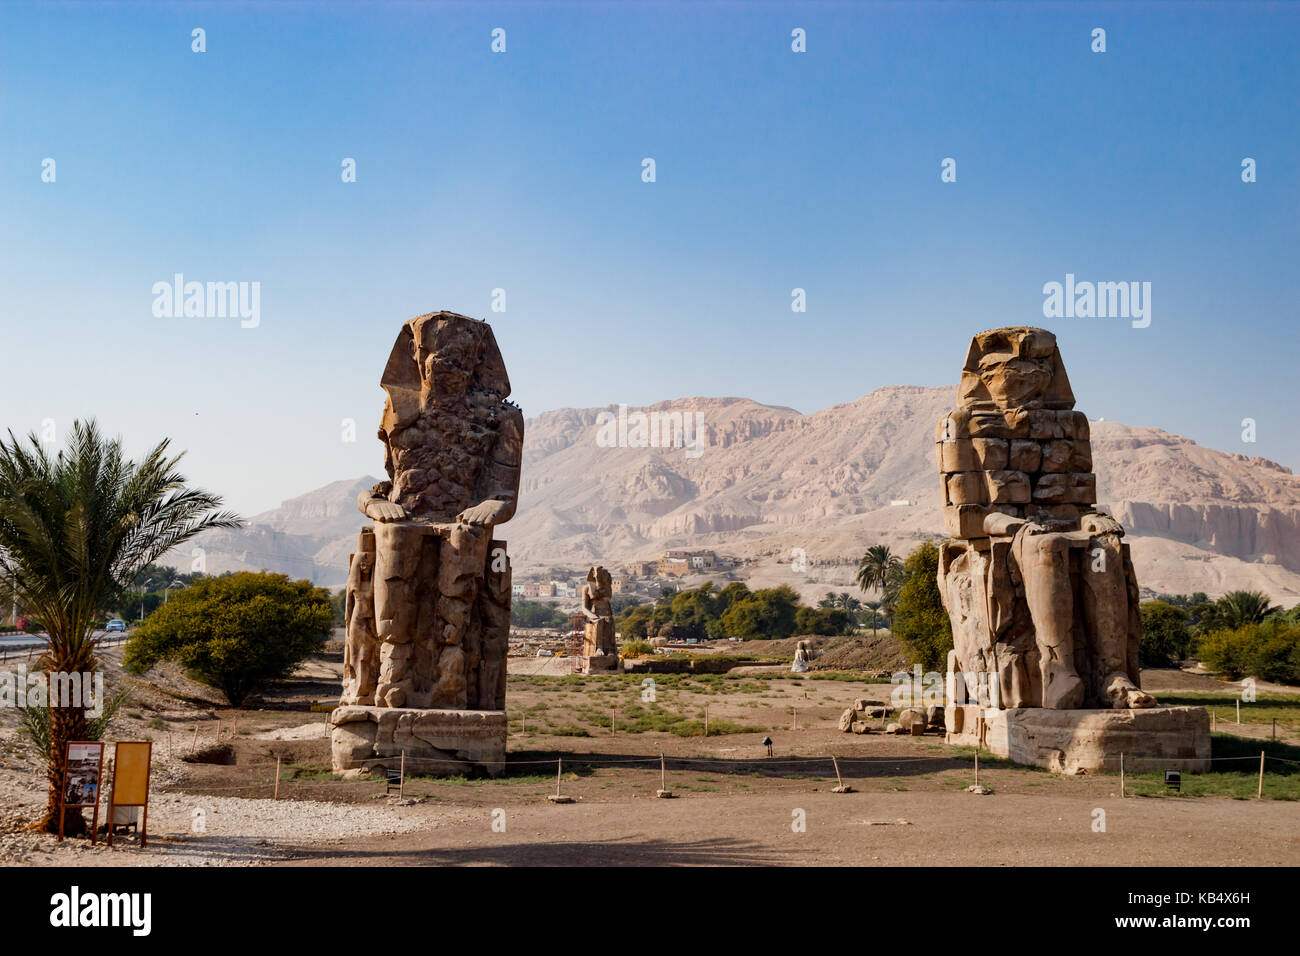 The ruins of statues in Luxor, Egypt - Stock Image